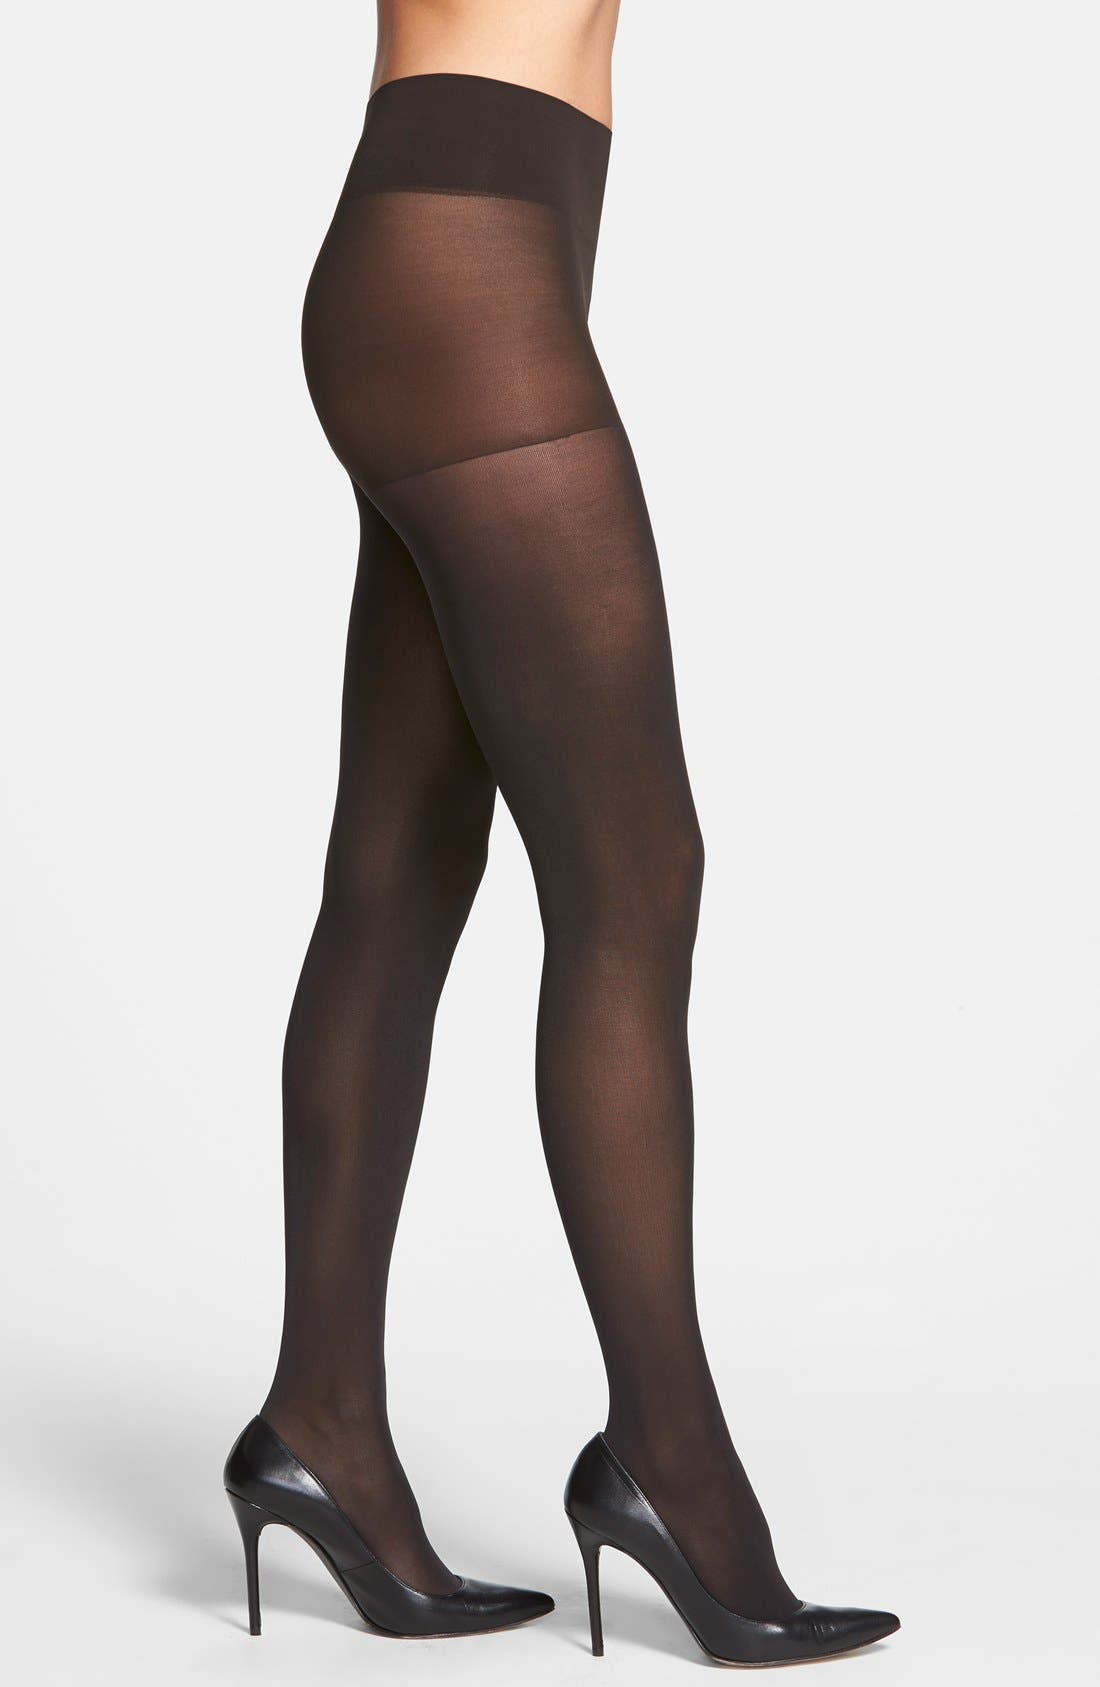 Alternate Image 1 Selected - DKNY Opaque Control Top Tights (2 for $30)